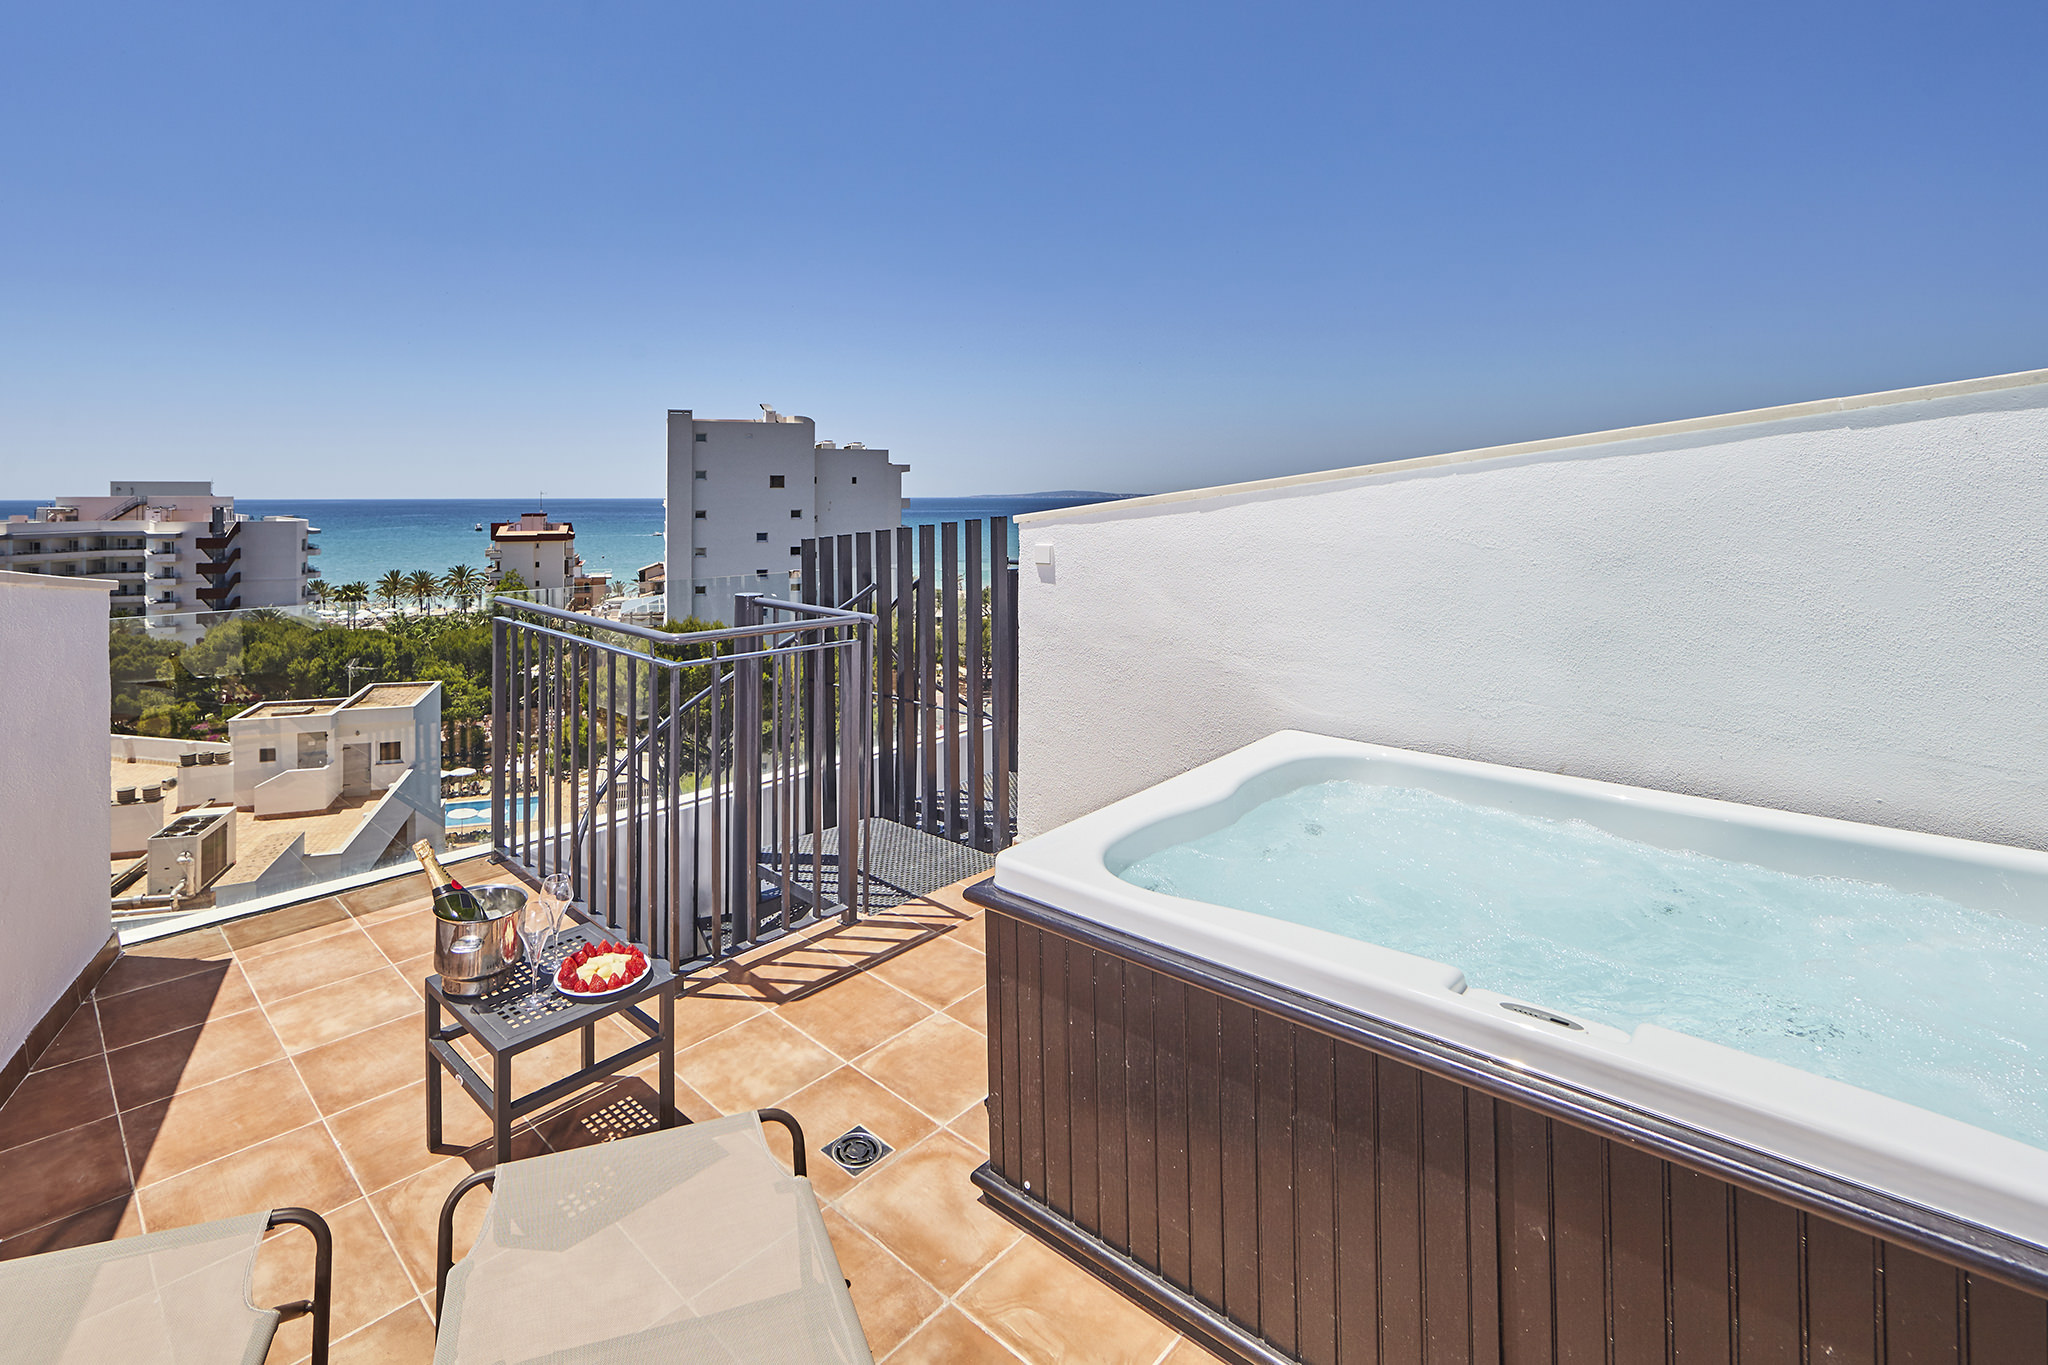 book your double room sea view at Hotel Principe in Playa de Palma